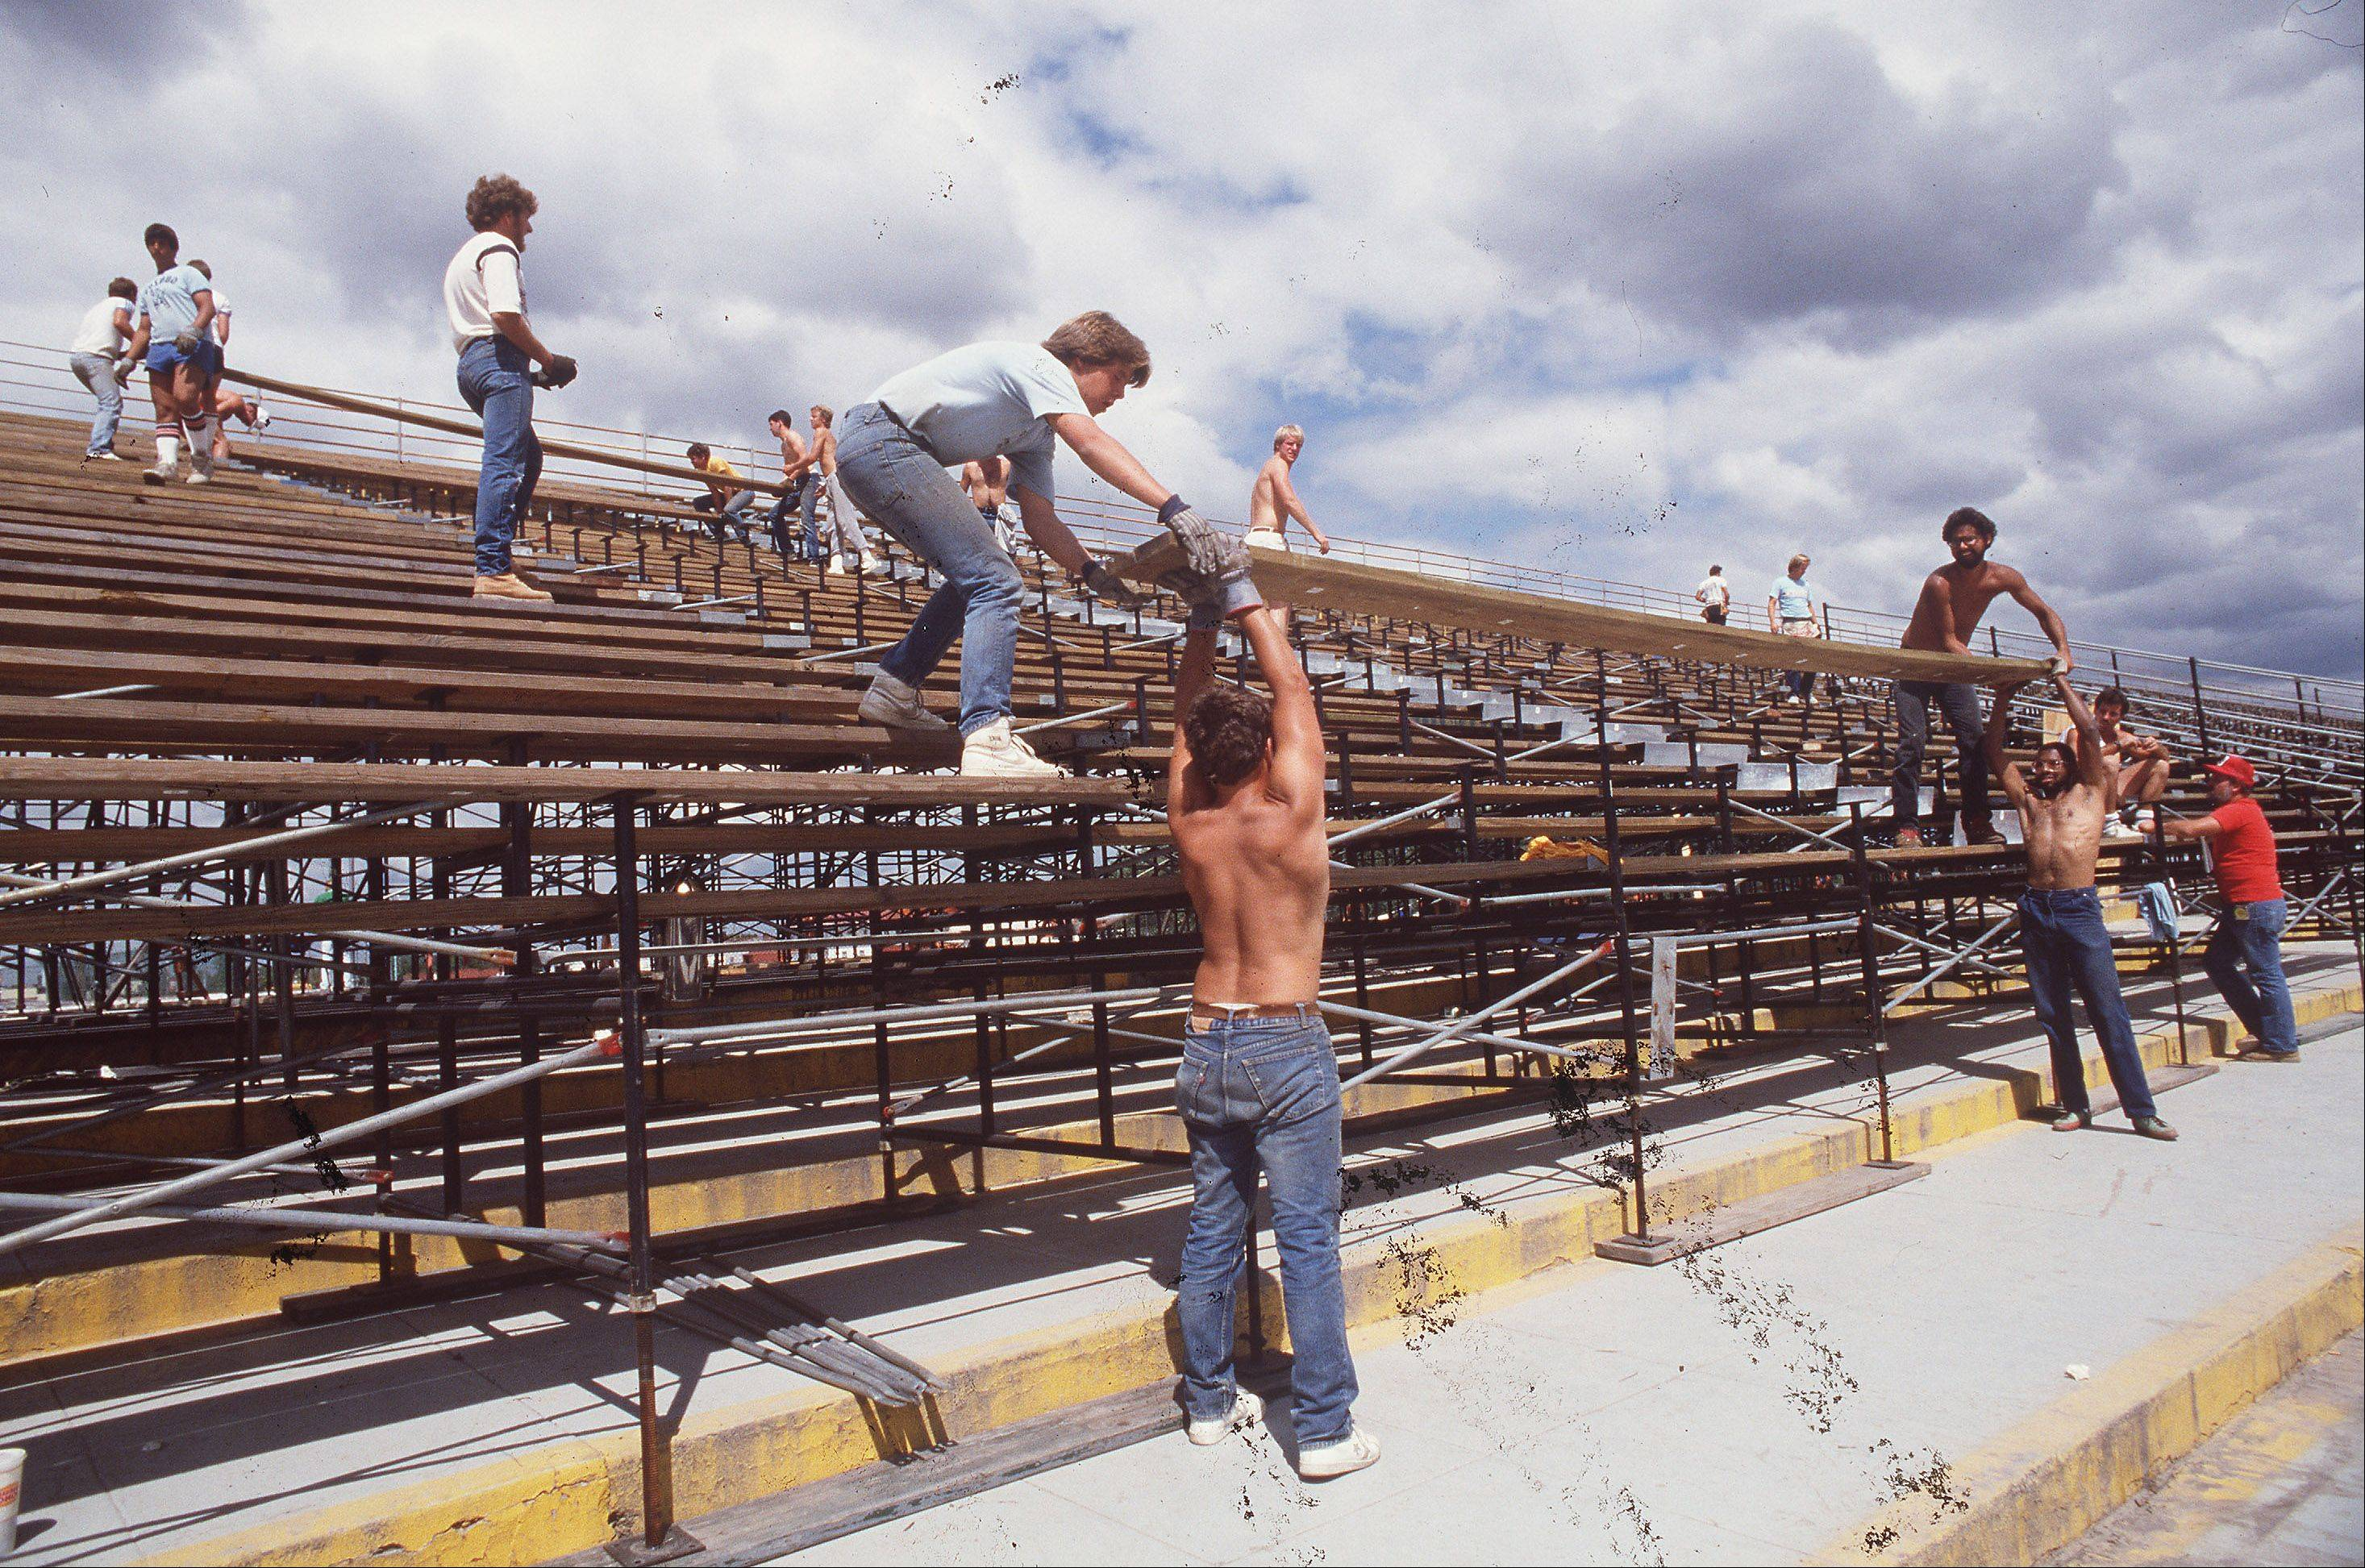 Bleachers are set up for the running of the Miracle Million on August 25, 1985 at Arlington Park after the fire in July.